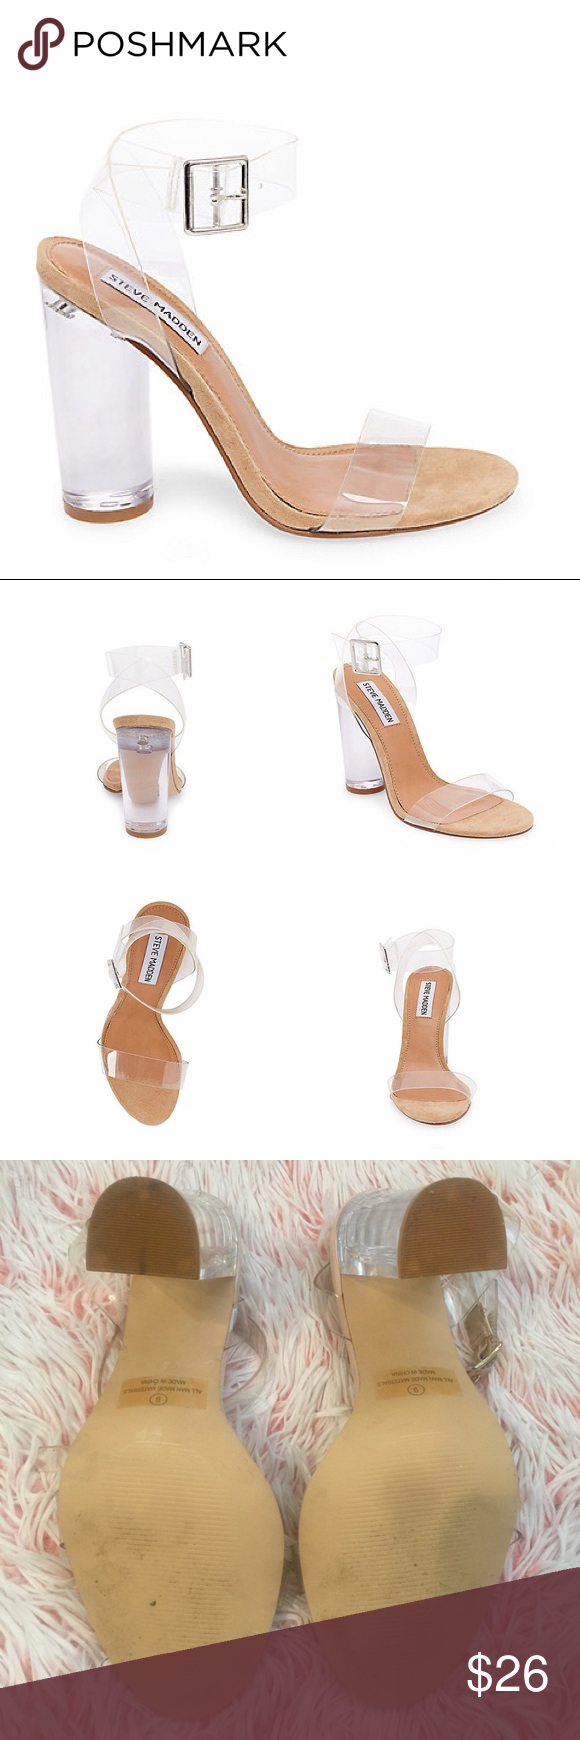 3f6470fc4fc Clear Nude Sandal Heels Very similar to the Steve Madden Style, but ...